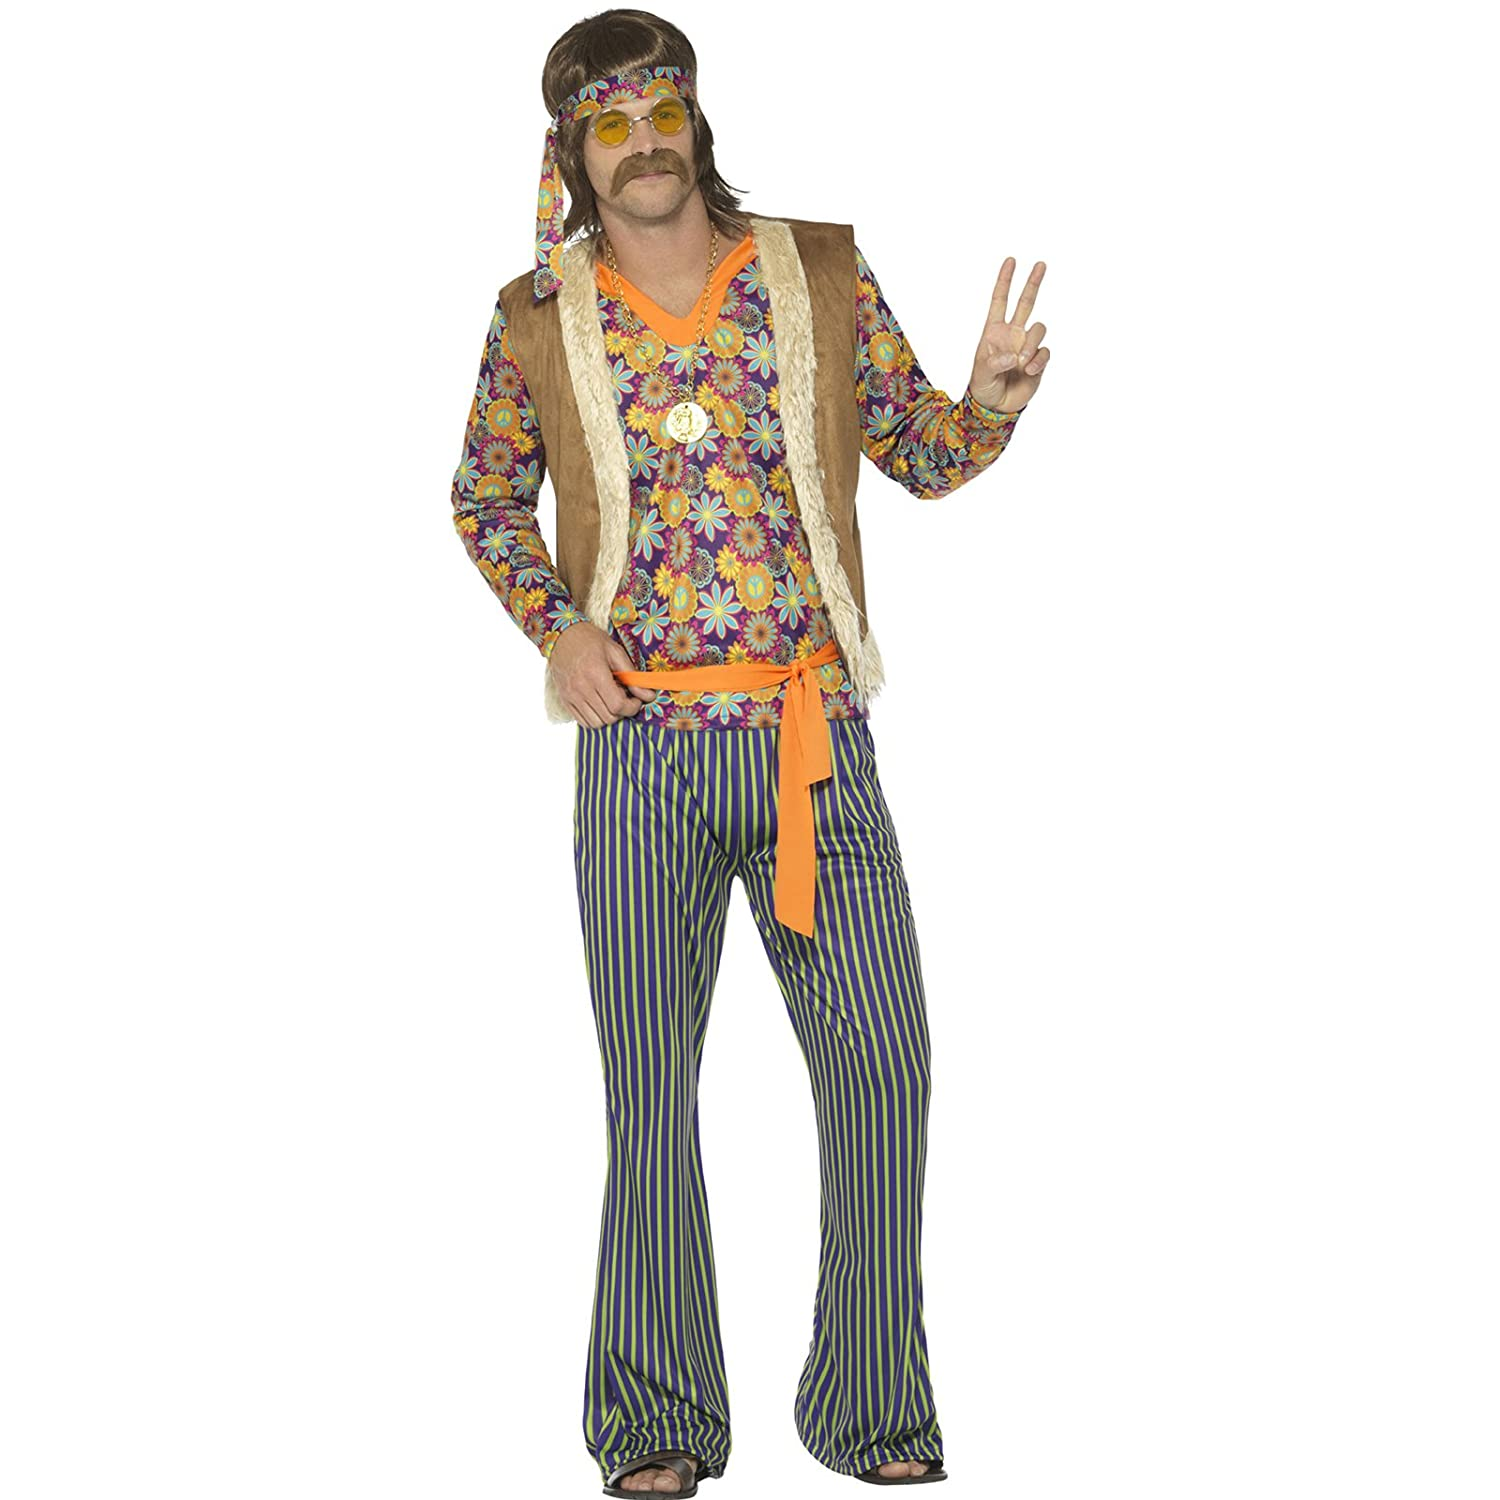 Men's Vintage Style Clothing Smiffys Mens 60s Singer Costume Male with Top Waistcoat $34.63 AT vintagedancer.com